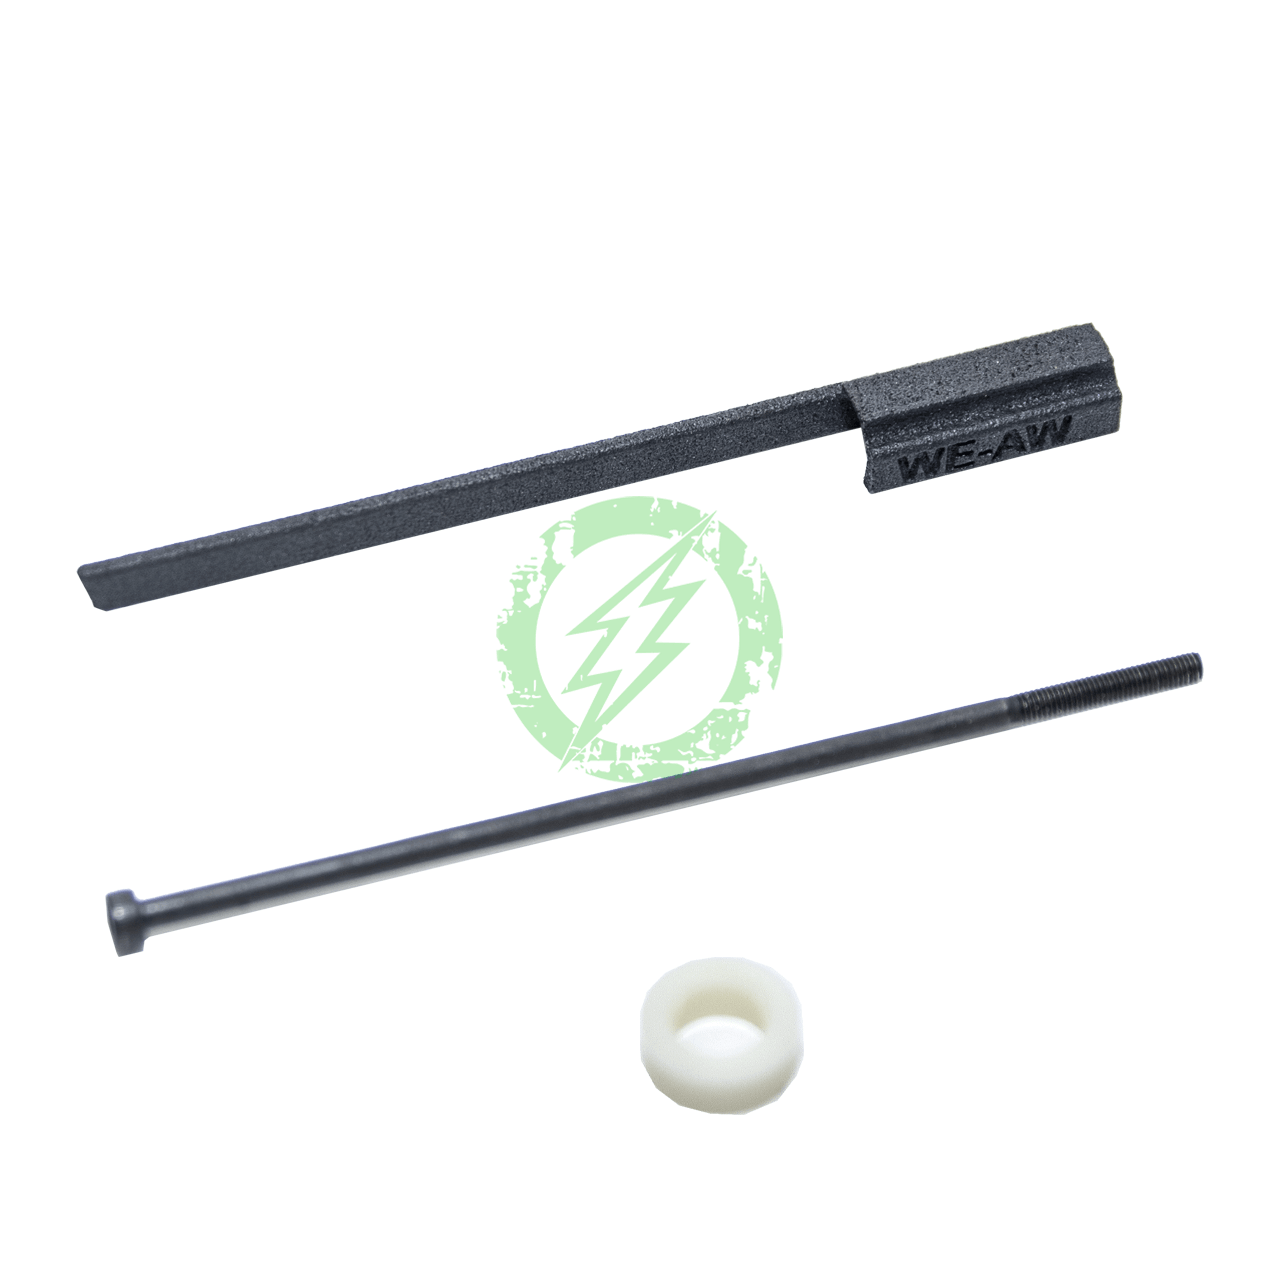 Primary Airsoft Hi-Capa HPA / M4 Magazine Adapter for WE Tech GBB Accessories